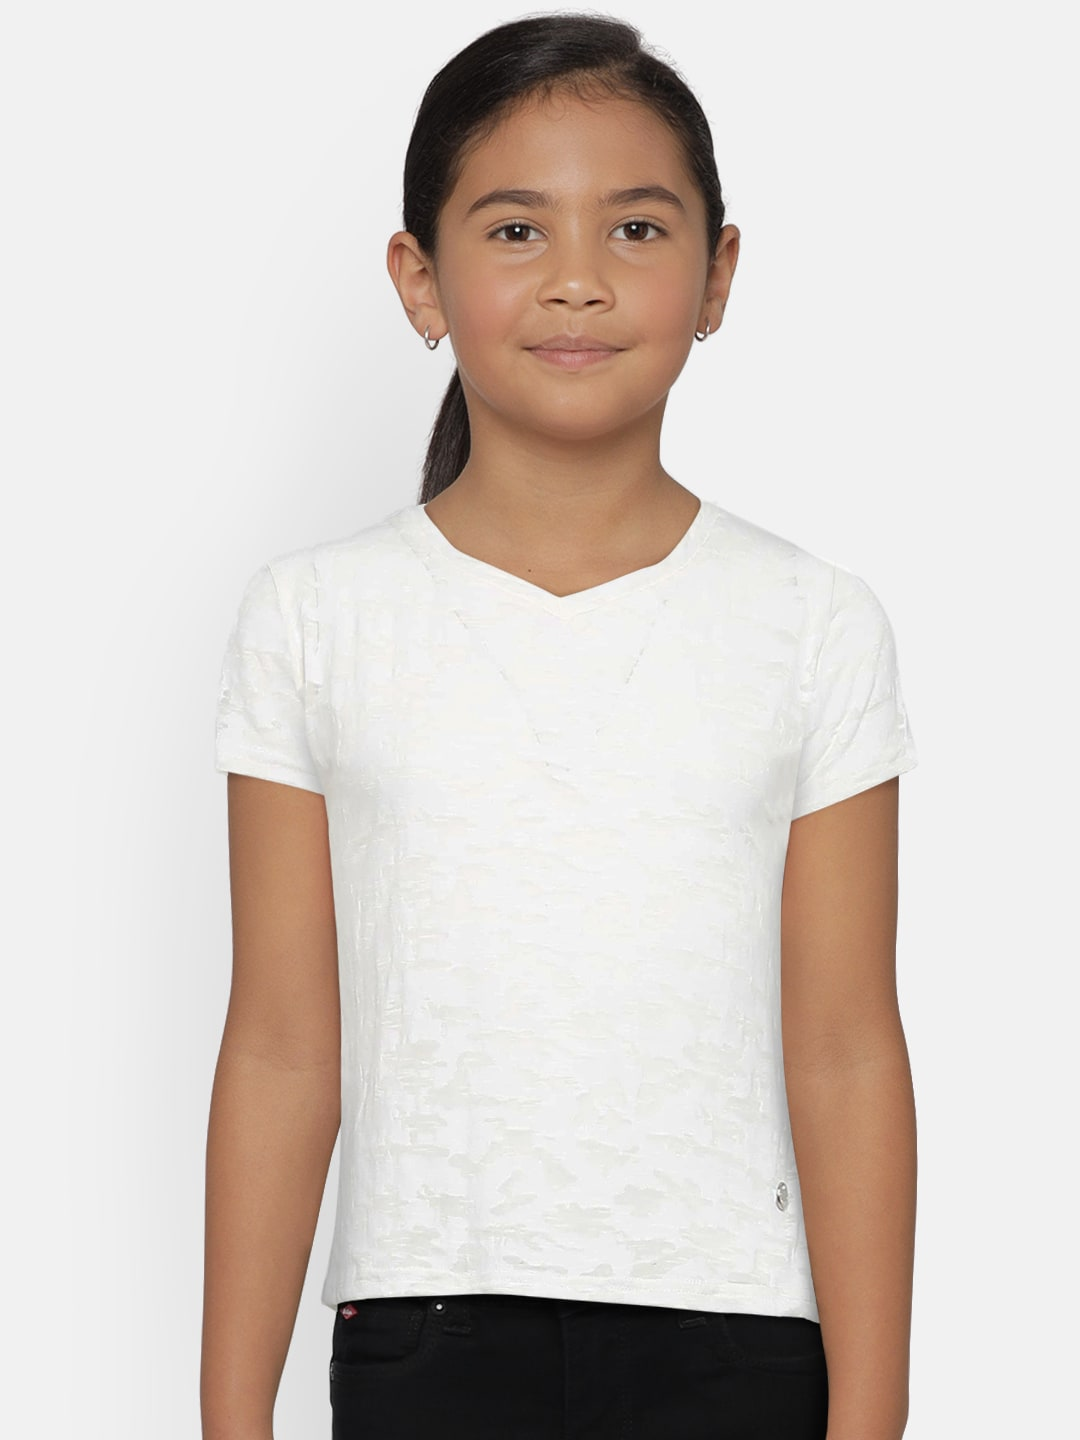 1879a0e21b7 Kids T shirts - Buy T shirts for Kids Online in India Myntra